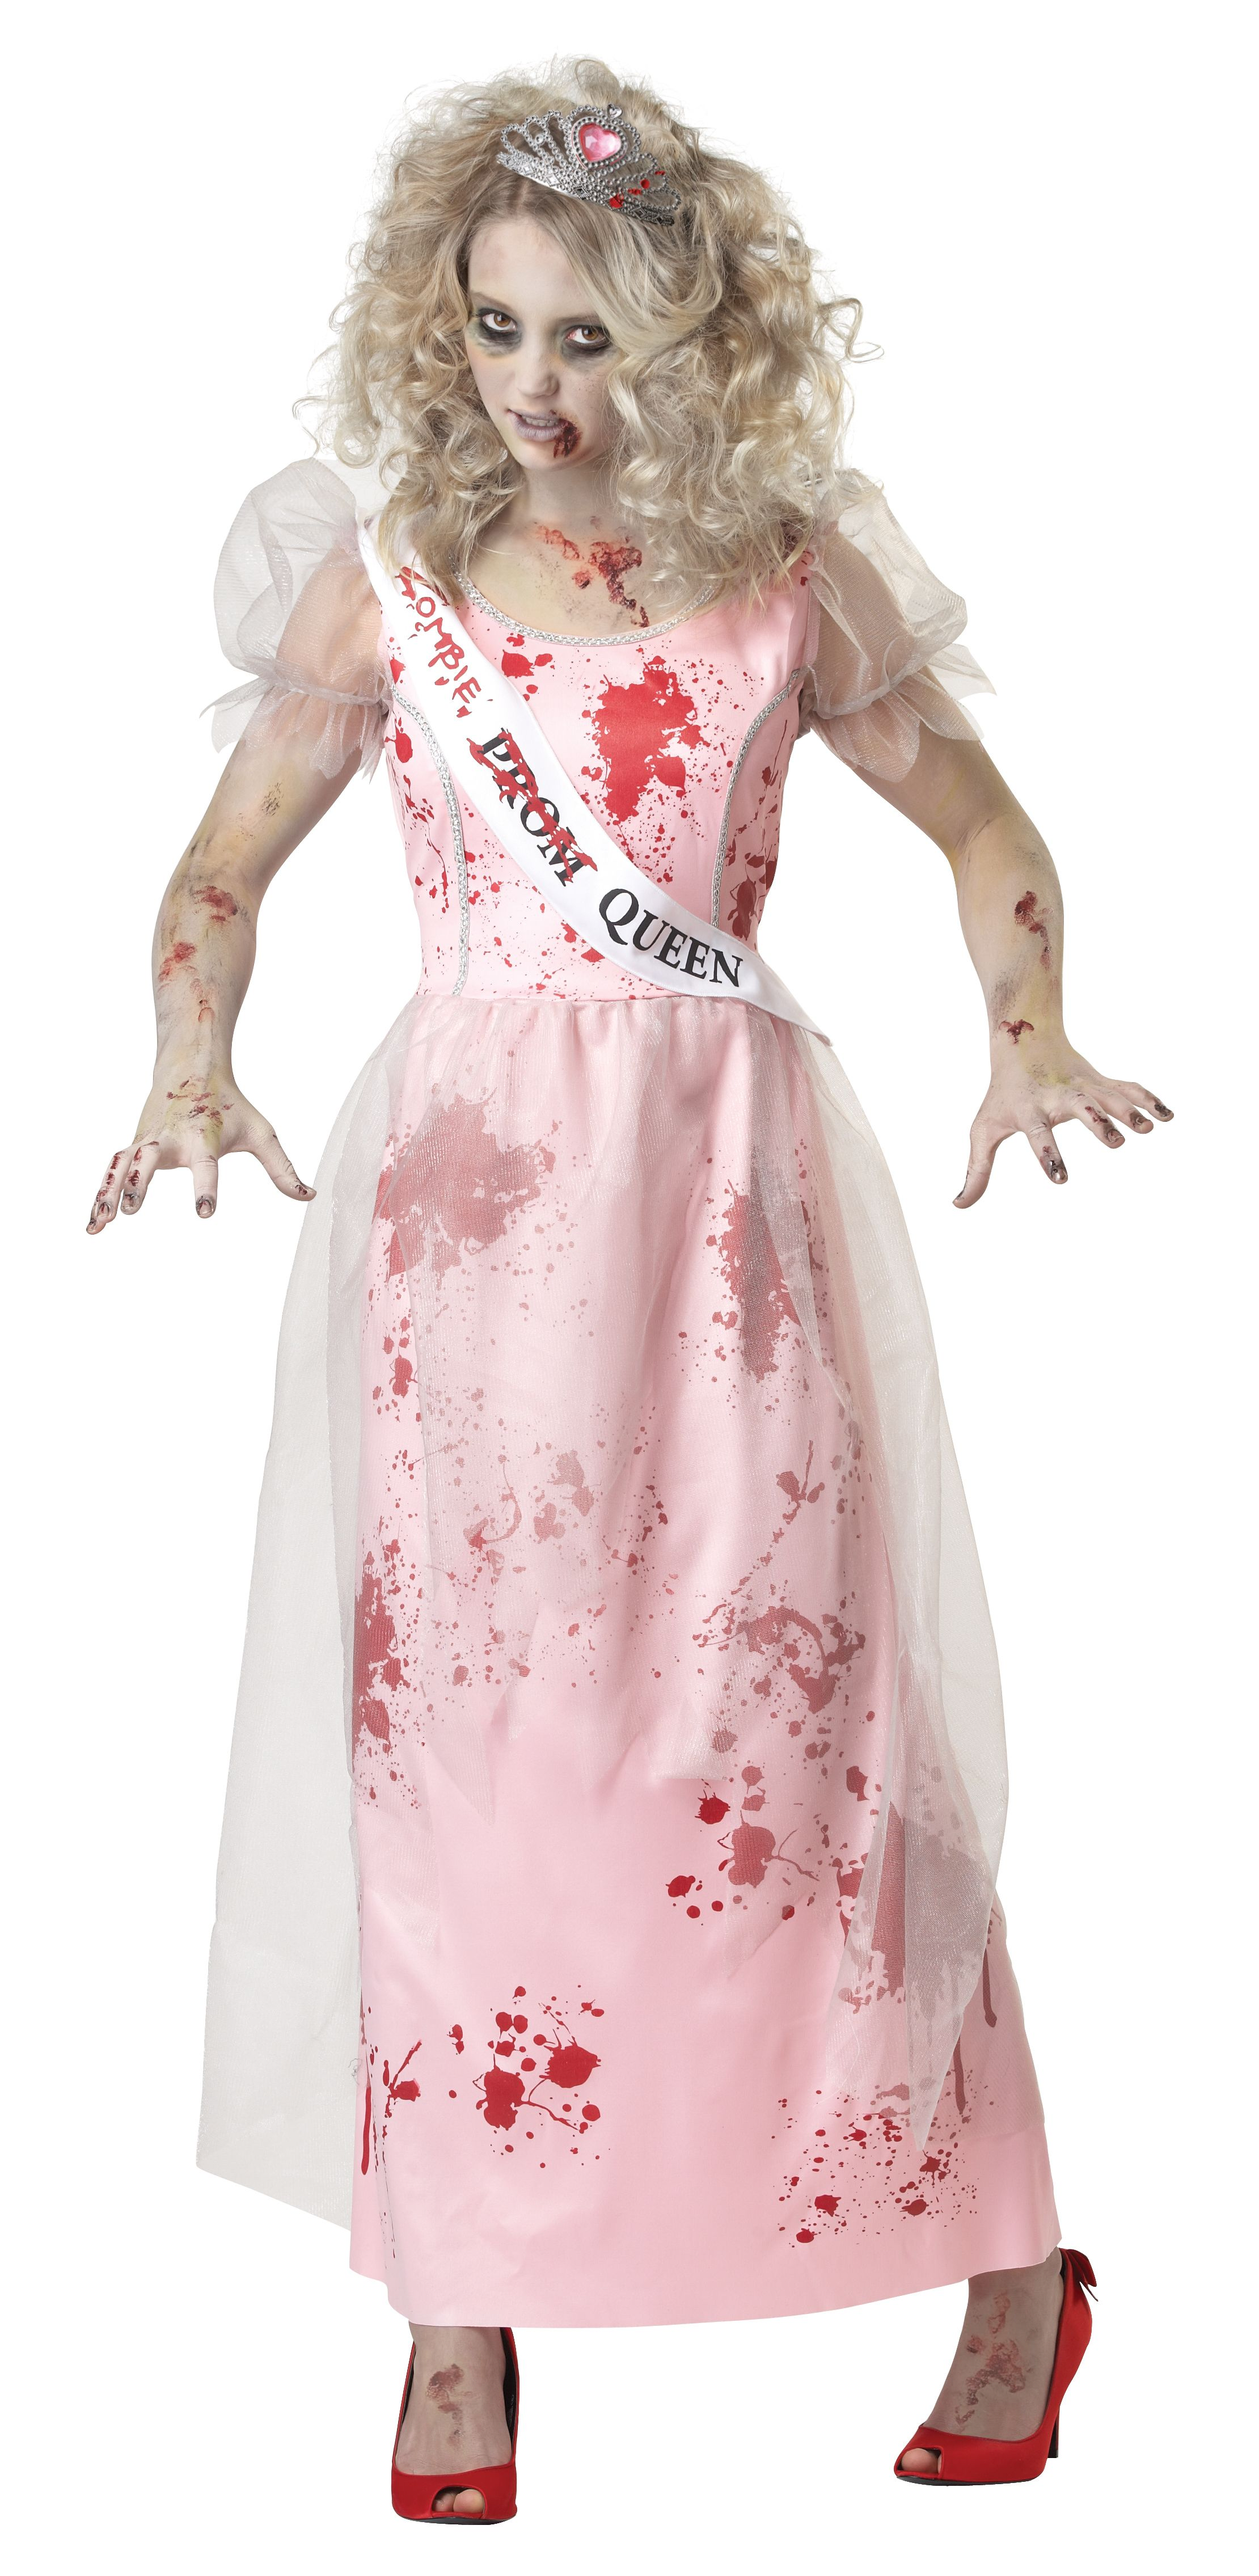 Adult Female Prom Zombie Queen Costume by California Costumes 1595 ...